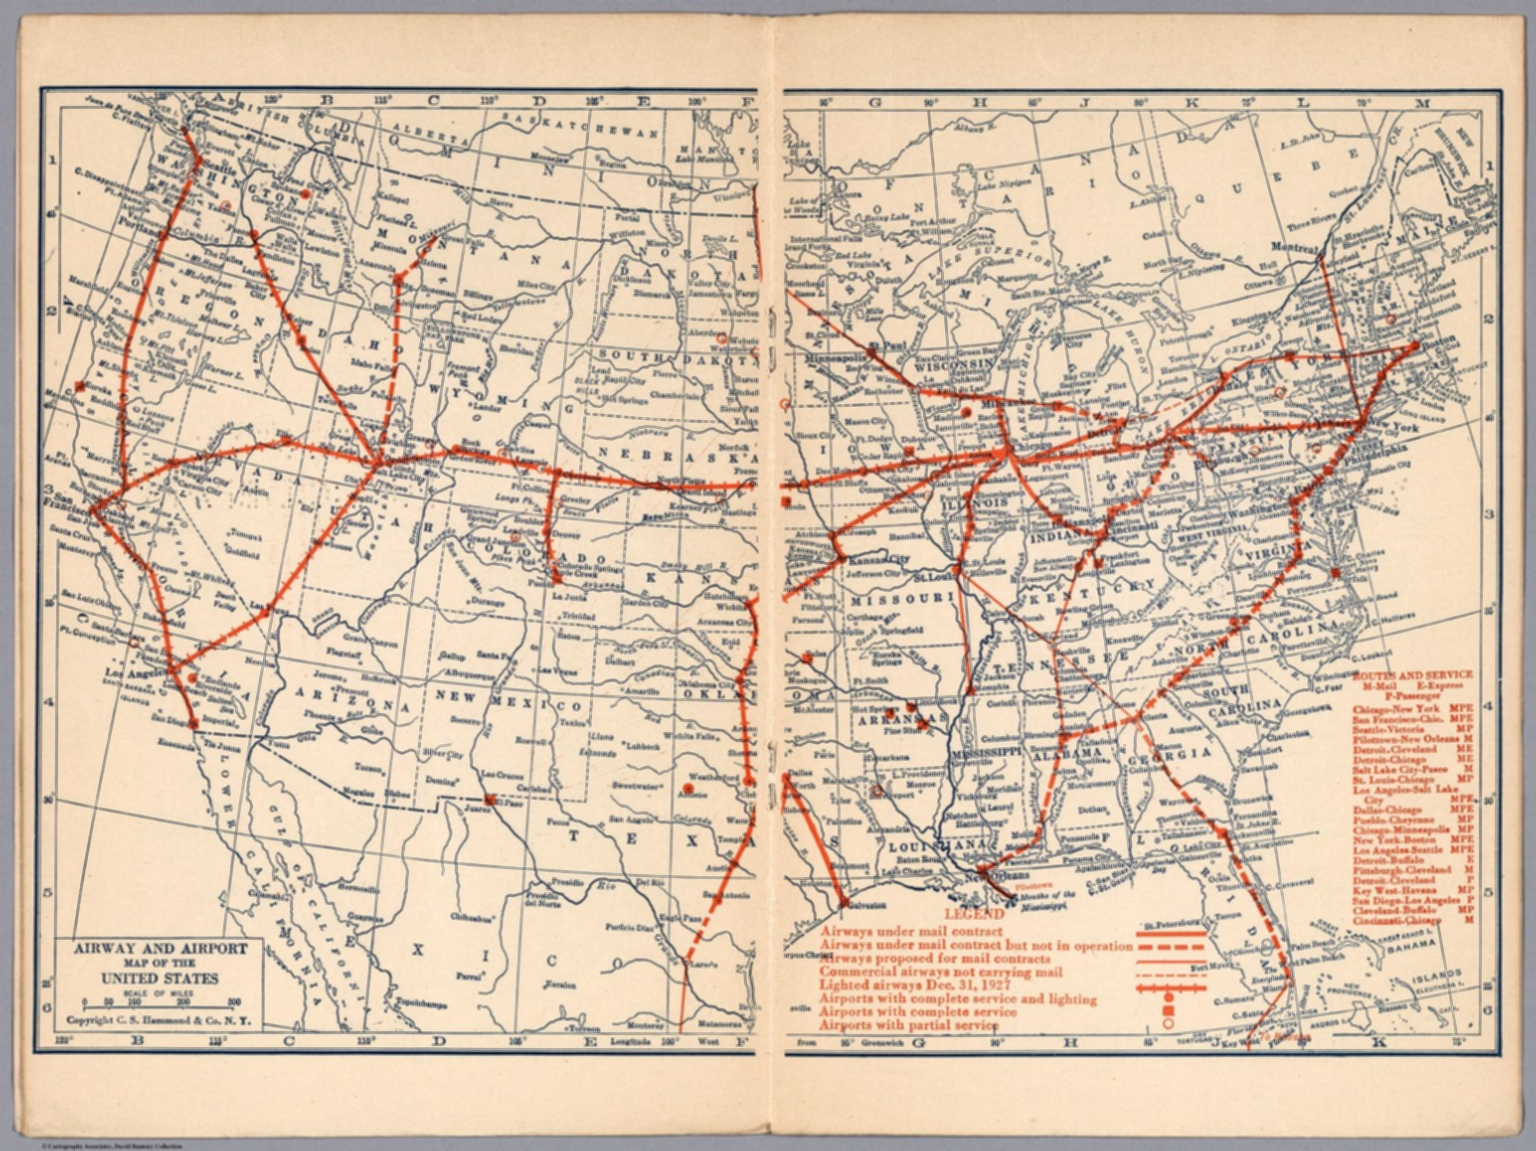 Airway and airport map of the United States